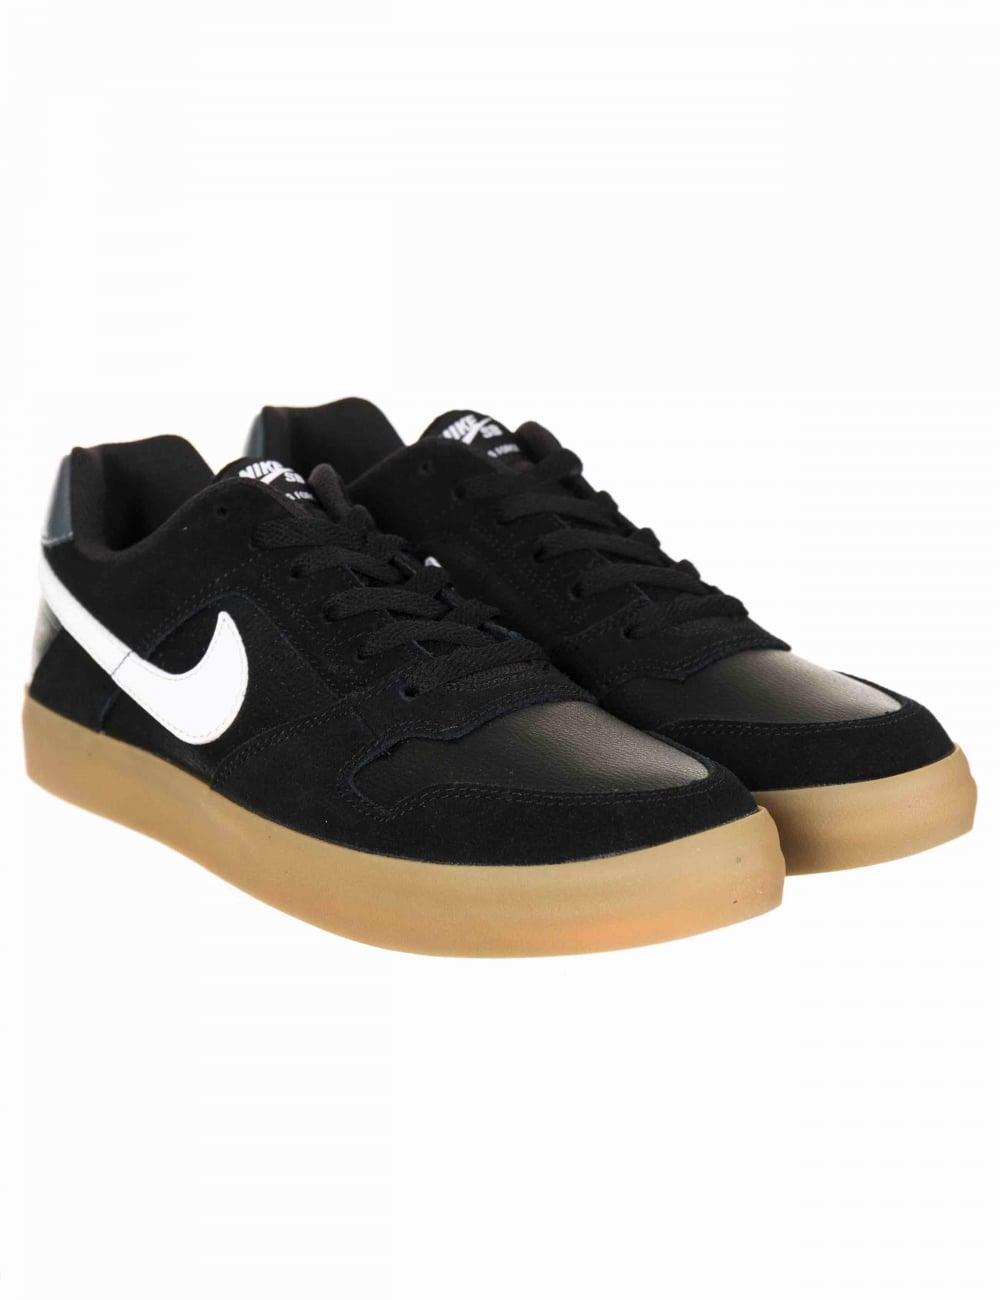 81395c77b165 Nike SB Delta Force Vulc Trainers - Black White-Gum - Footwear from ...